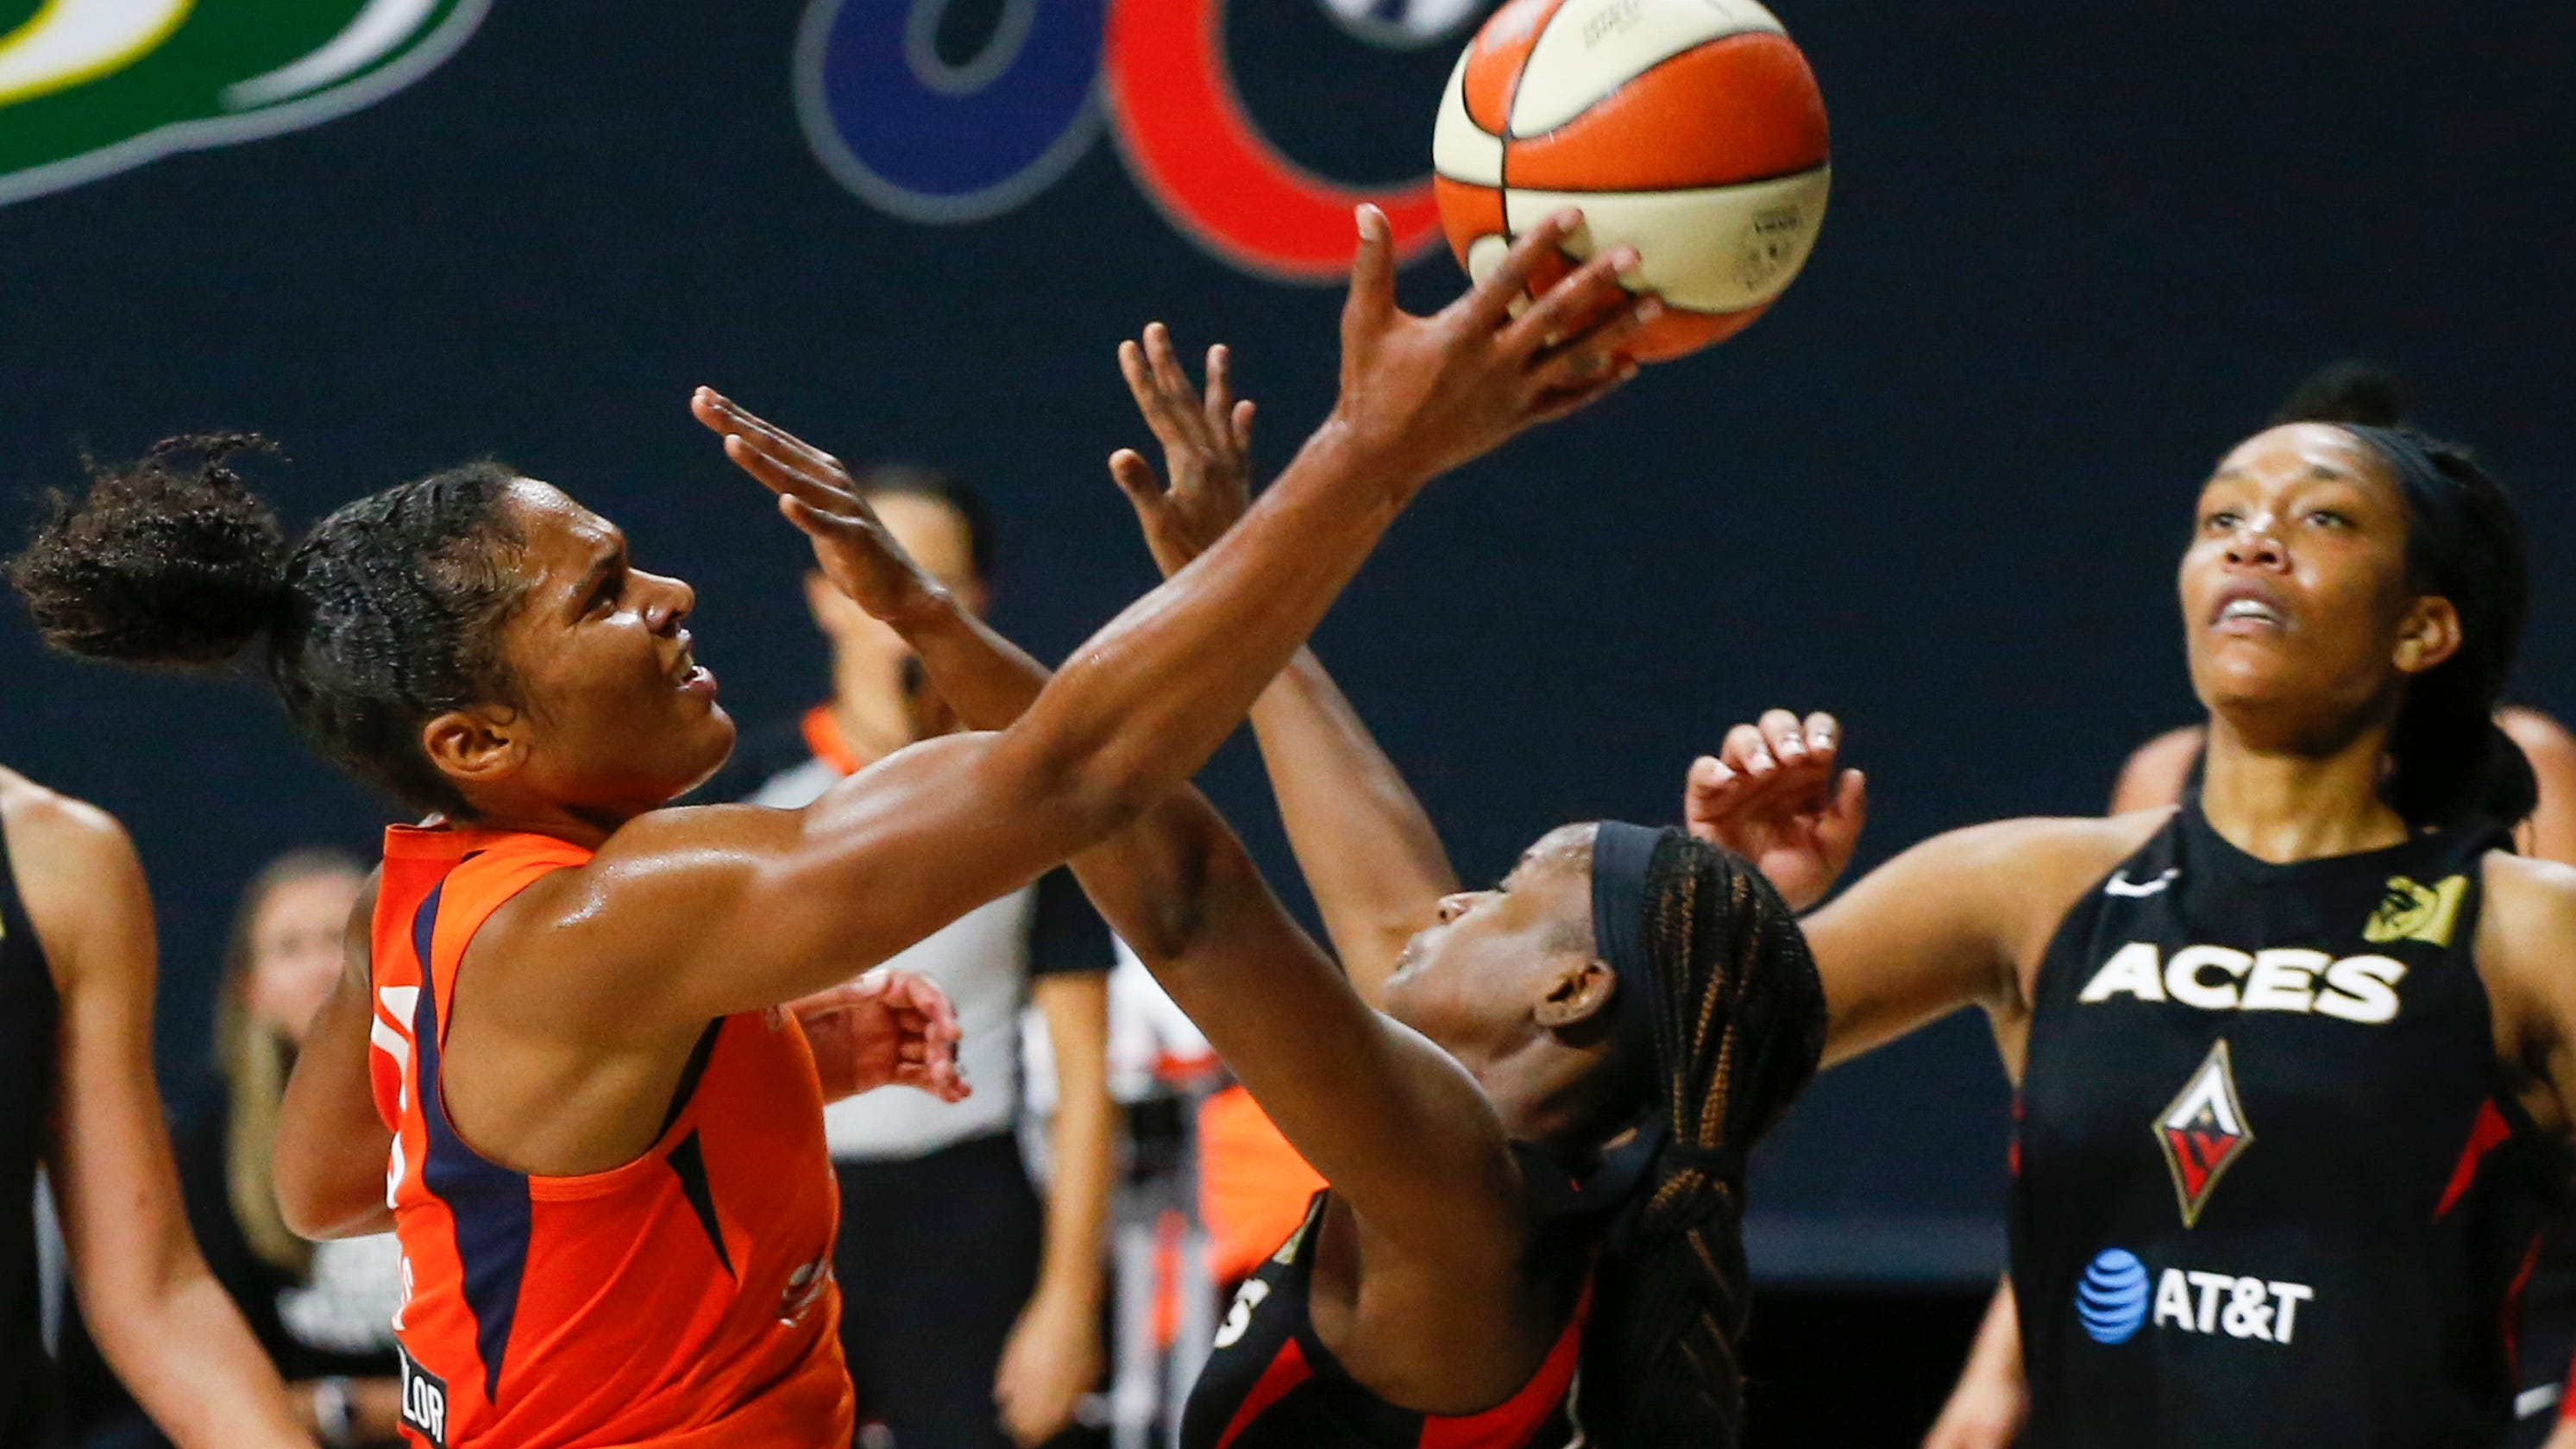 WNBA playoff game postponed after inconclusive COVID-19 tests